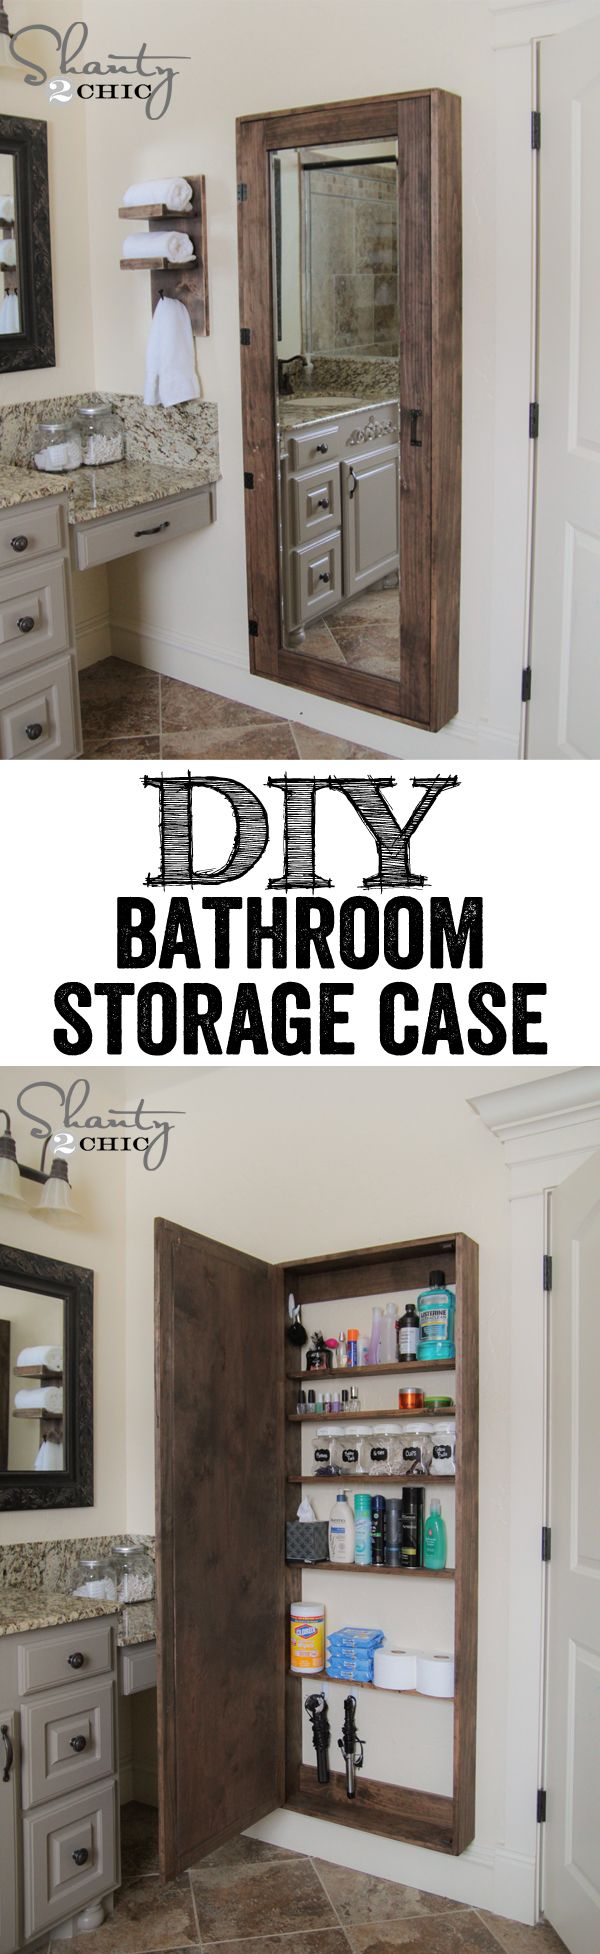 DIY Bathroom Organization Cabinet with full length mirror…. LOVE THIS IDEA! www.shanty-2-chic.com: Bathroom Design, Small Master Bathroom, Diy Bathroom, Bathroom Idea, Small Bathroom Makeover, Small Master Bedroom, Full Length Mirrors, Home Bathroom